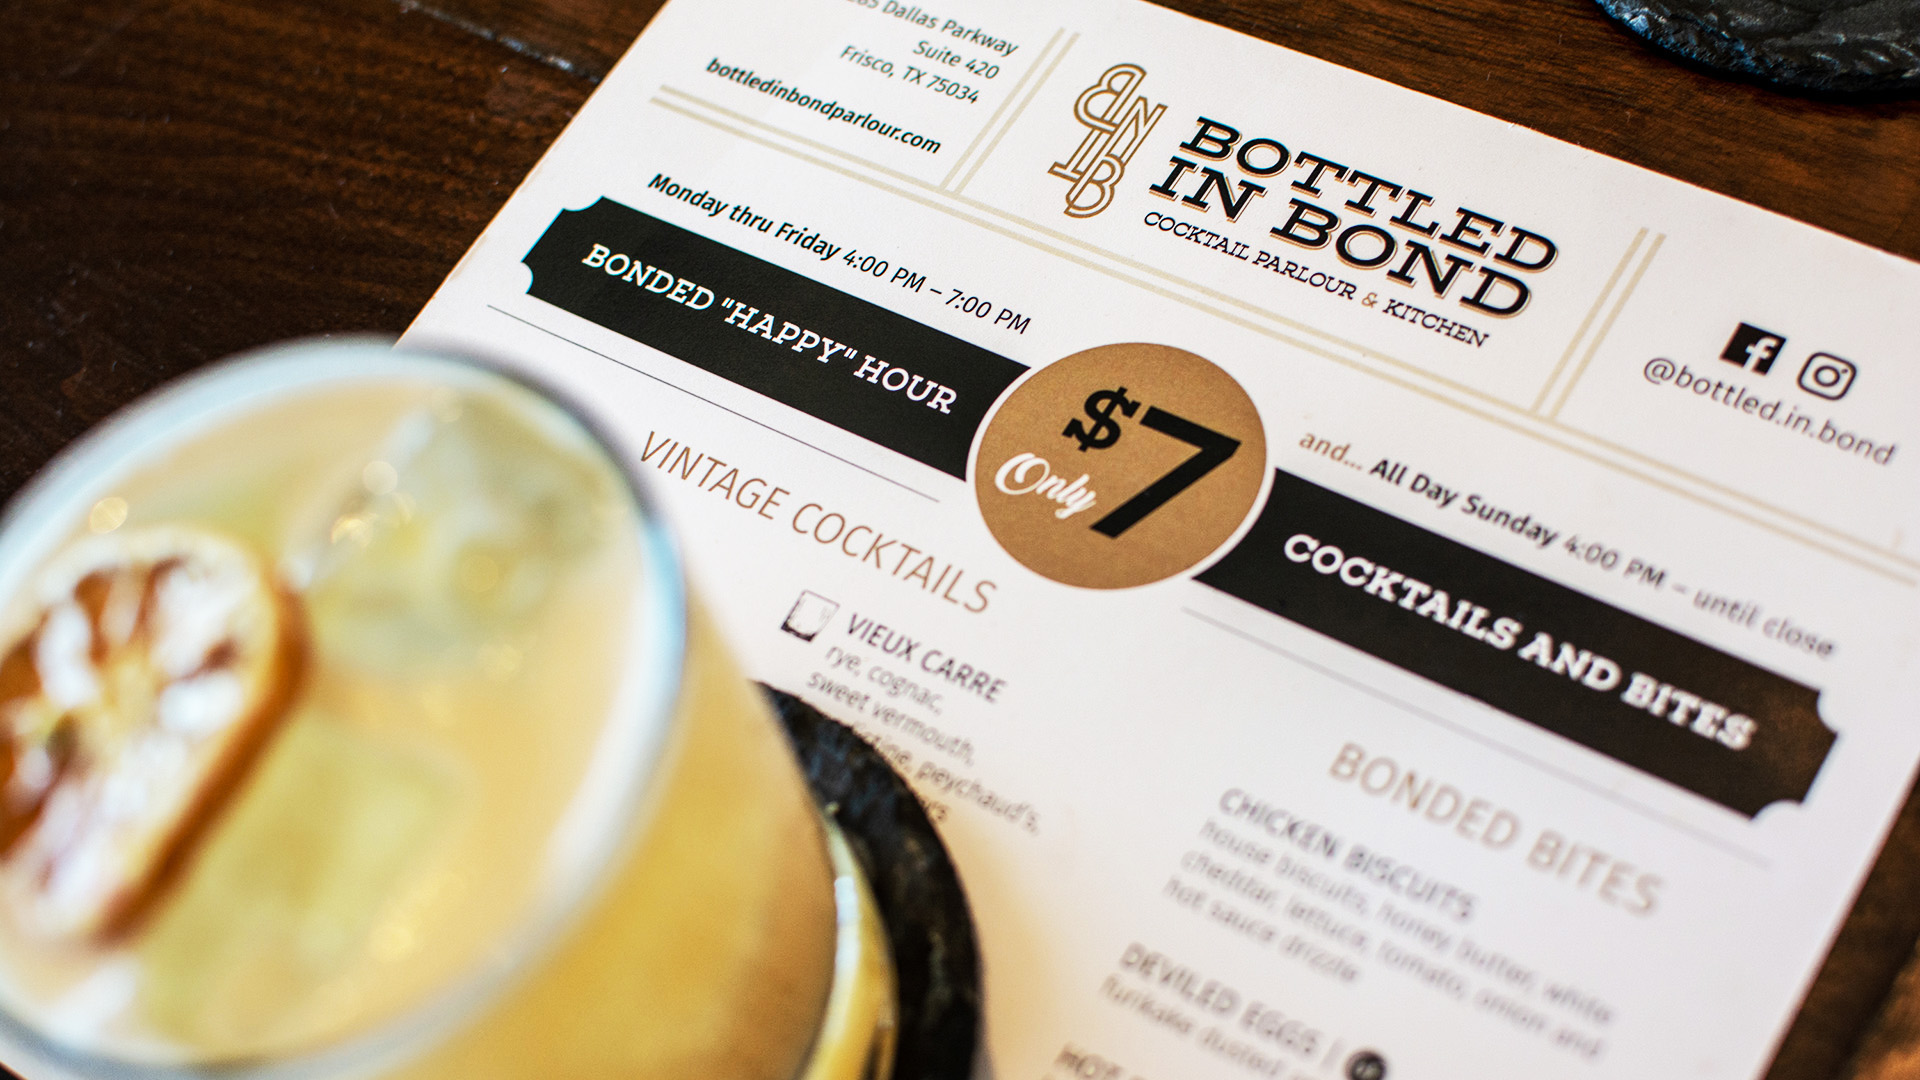 Bonded Hour Menu featuring $7 vintage cocktails and small plates